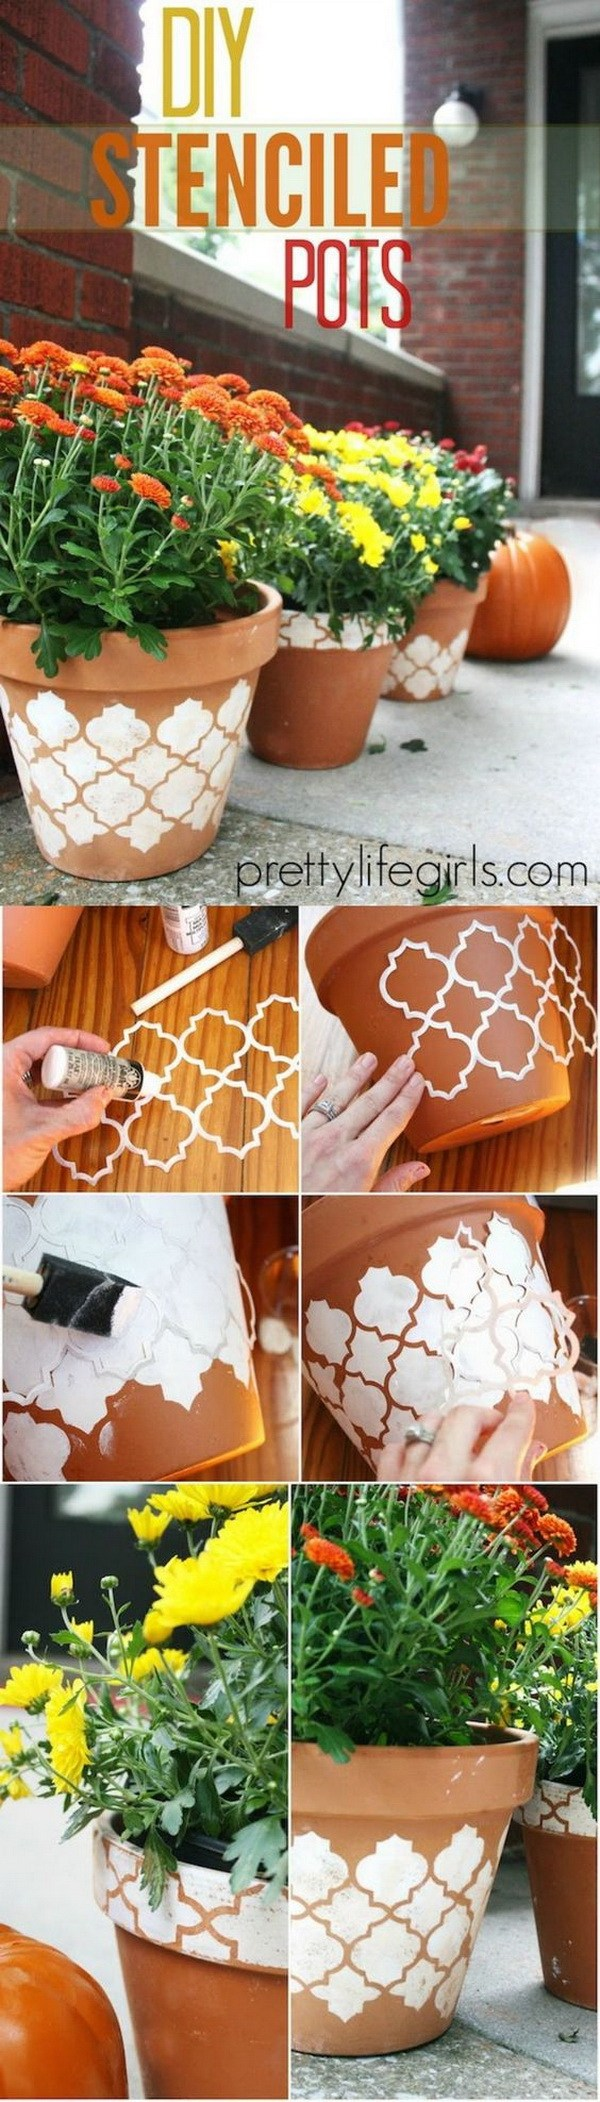 12-diy-ideas-to-decorate-with-terracotta-pots